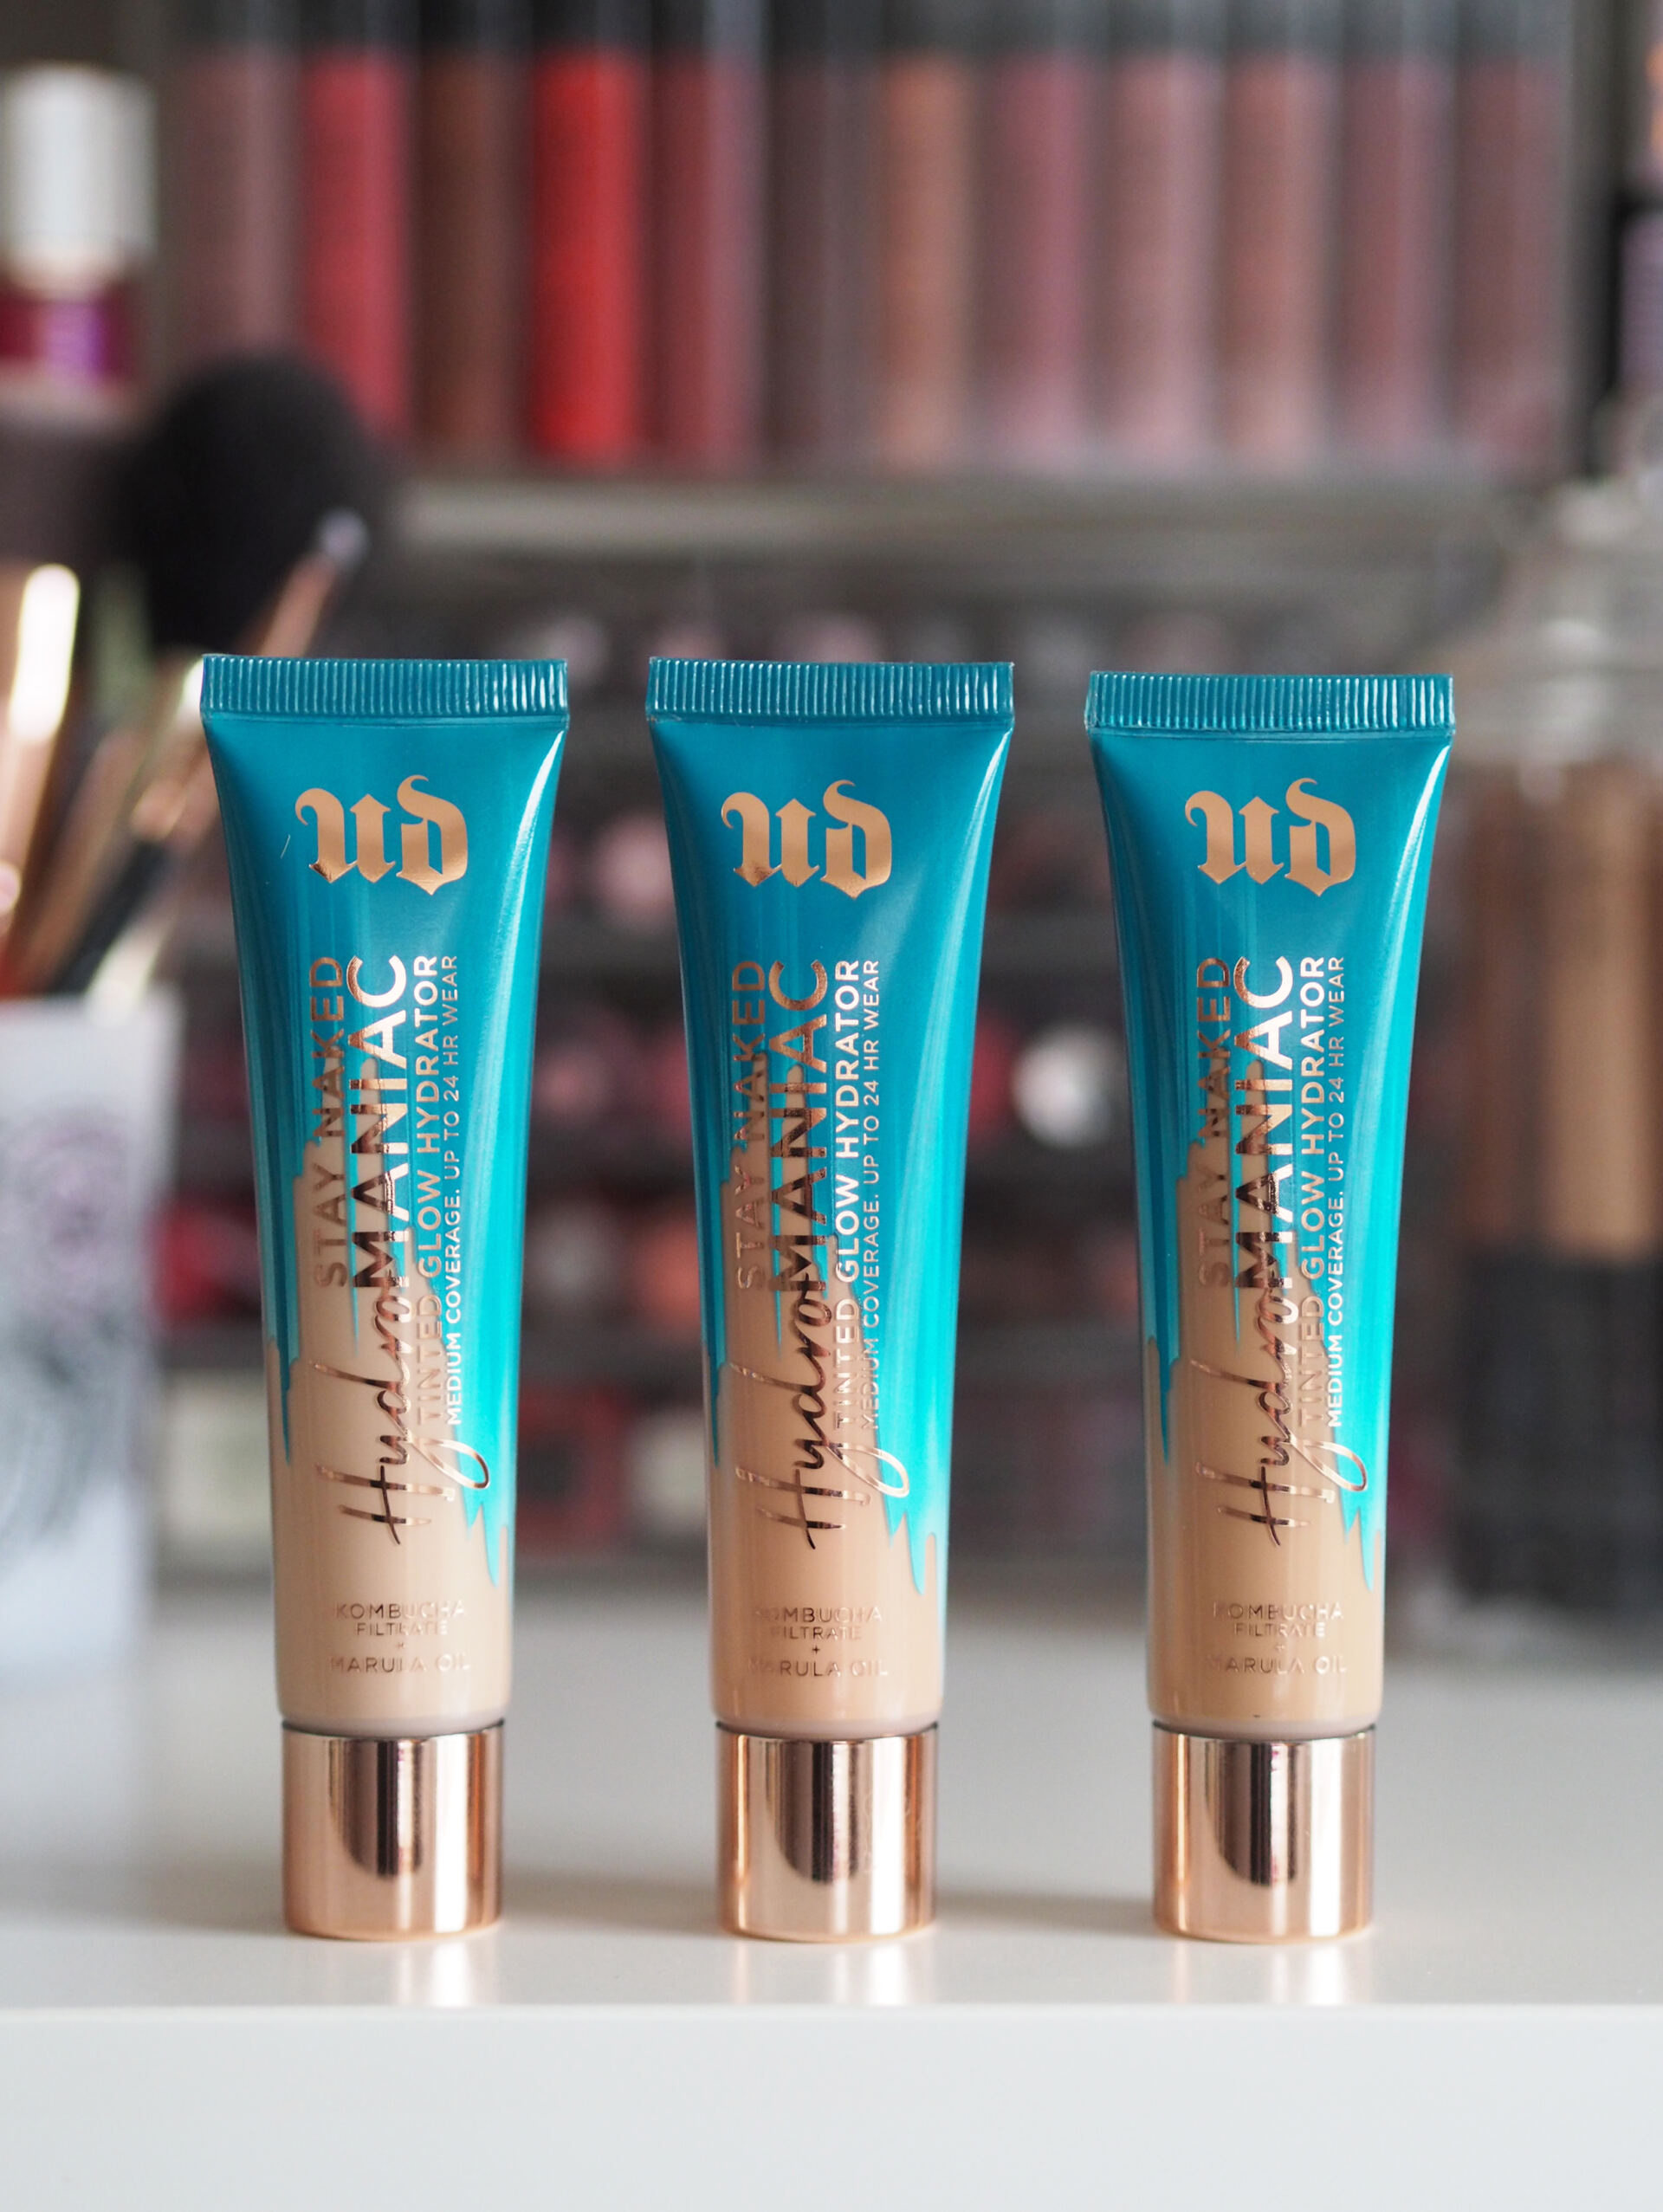 Stay Naked HydroMANIAC Hydrator exclusively available on